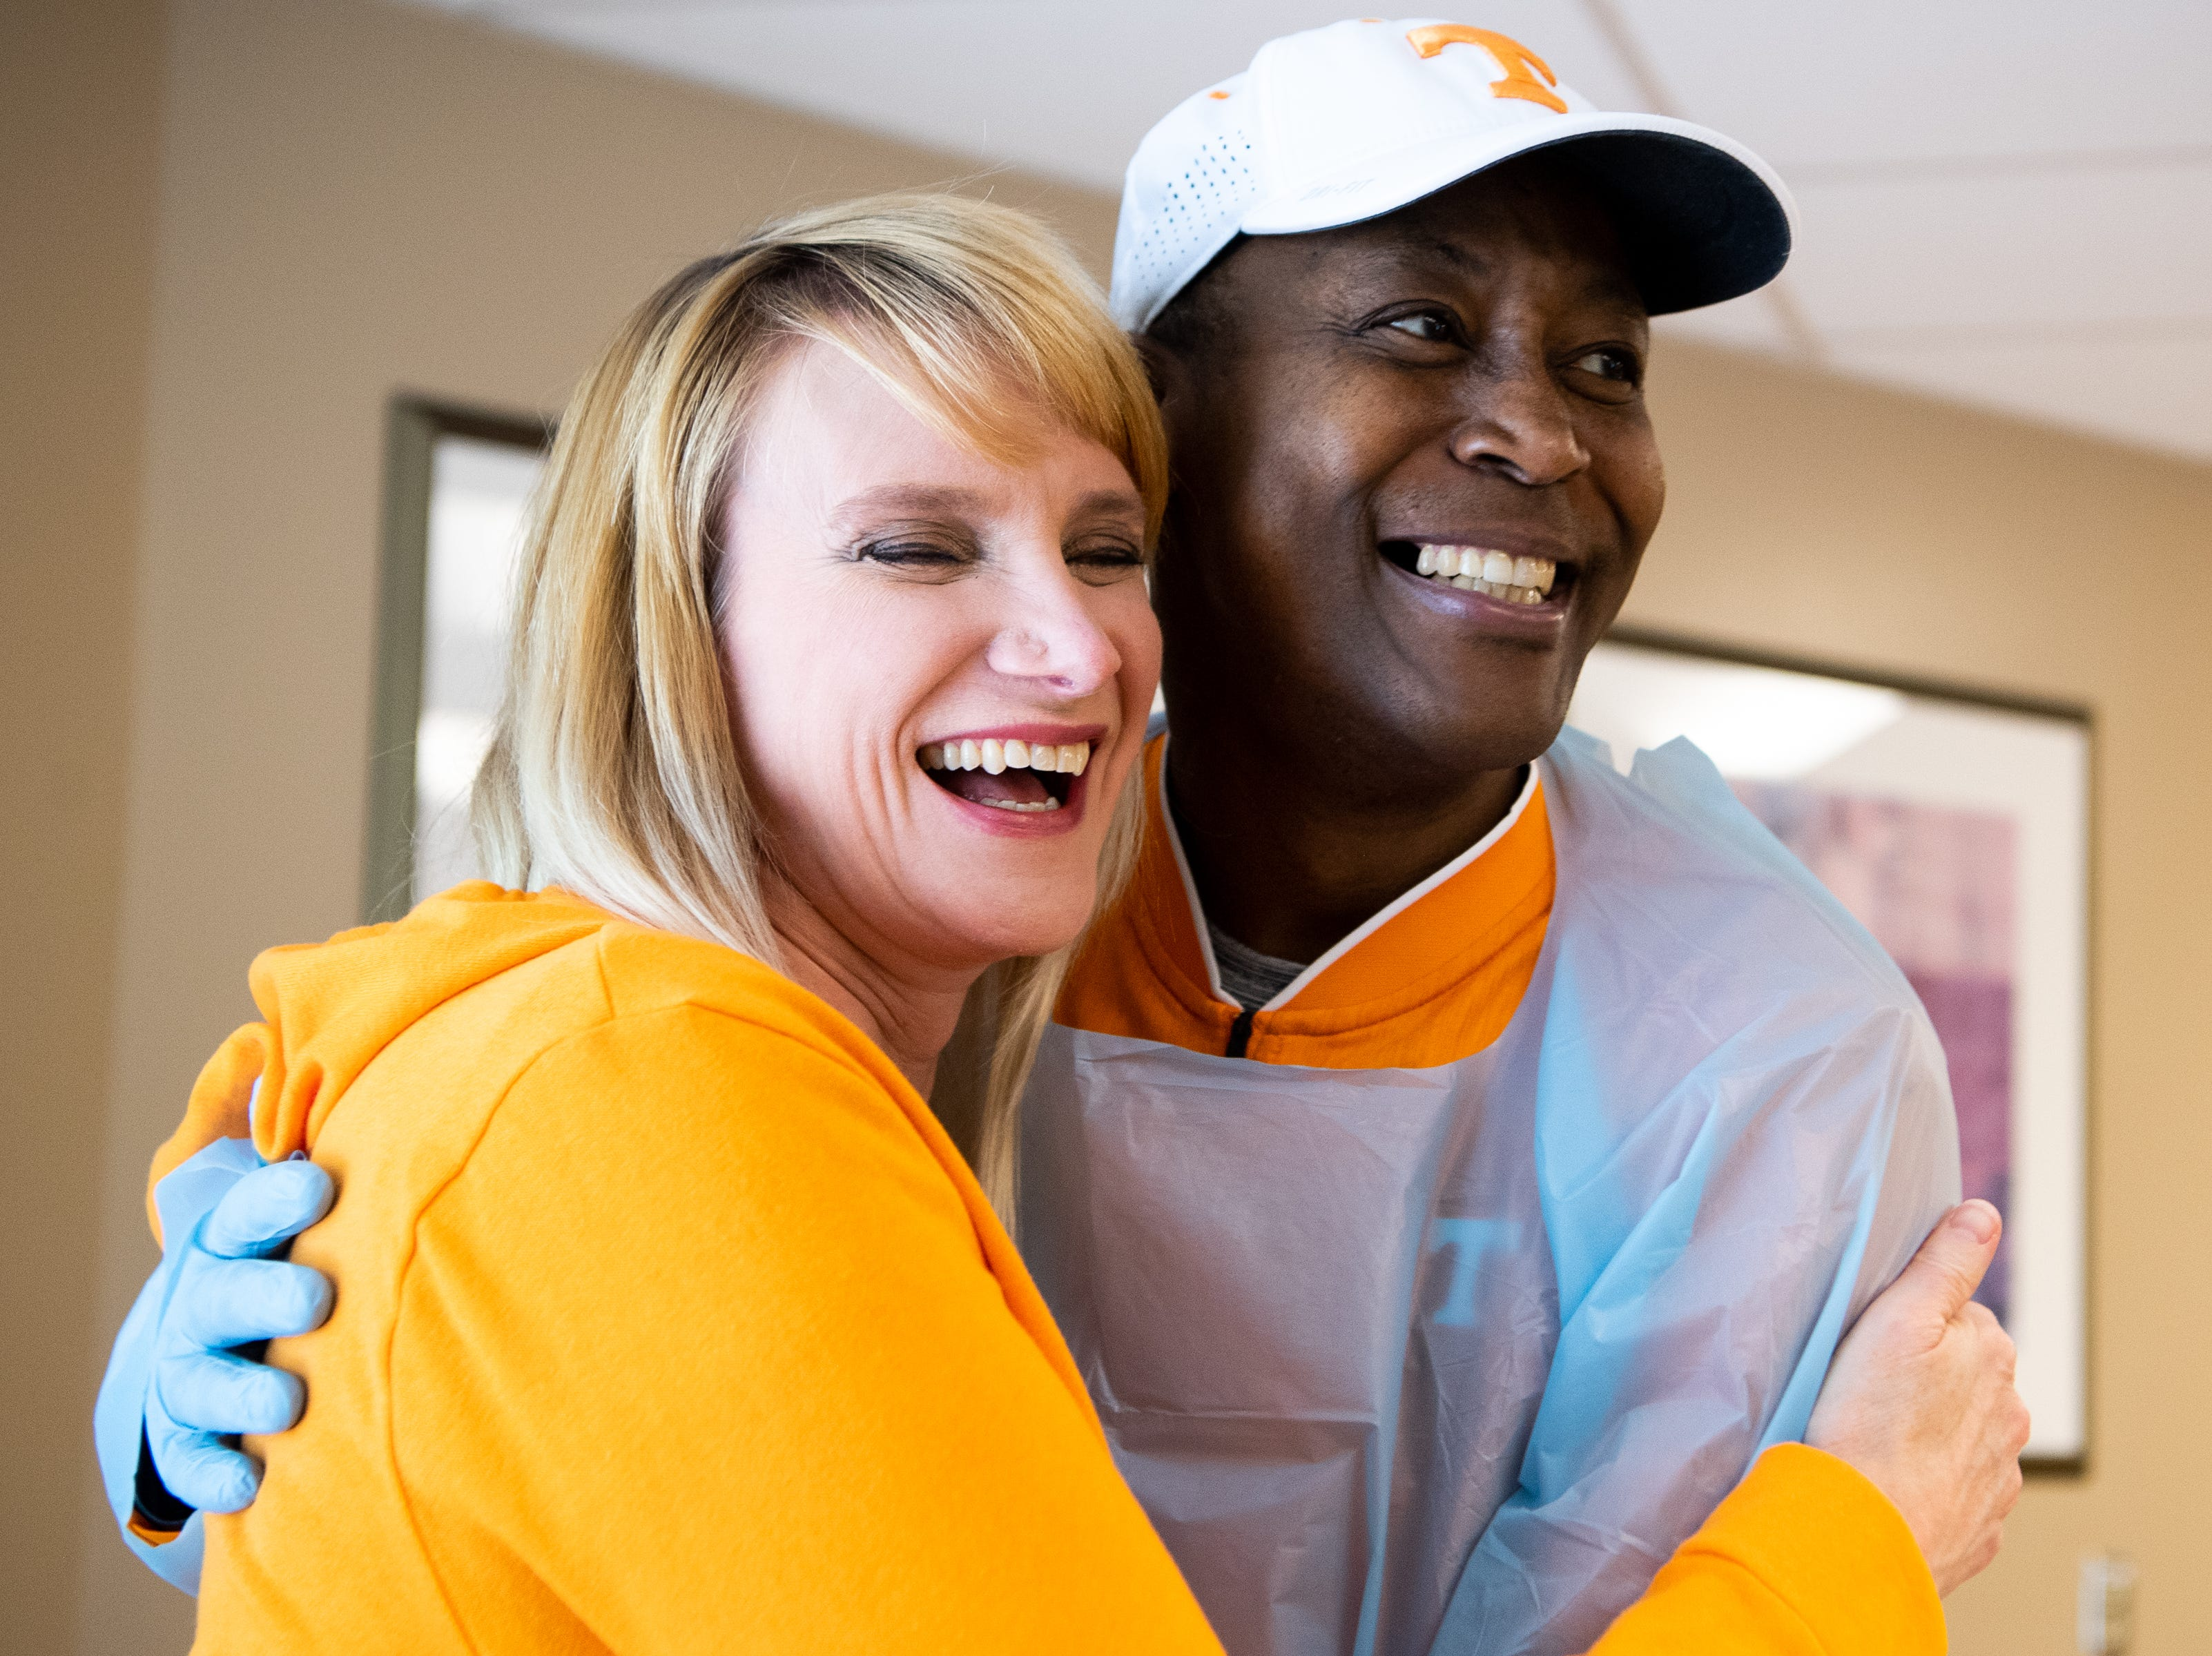 Former UT player Tony White, who is battling leukemia, hugs his wife Barbie White for a photo at Sarah Cannon Cancer Institute at TriStar Centennial on Thursday, March 14, 2019, in Nashville, Tenn.